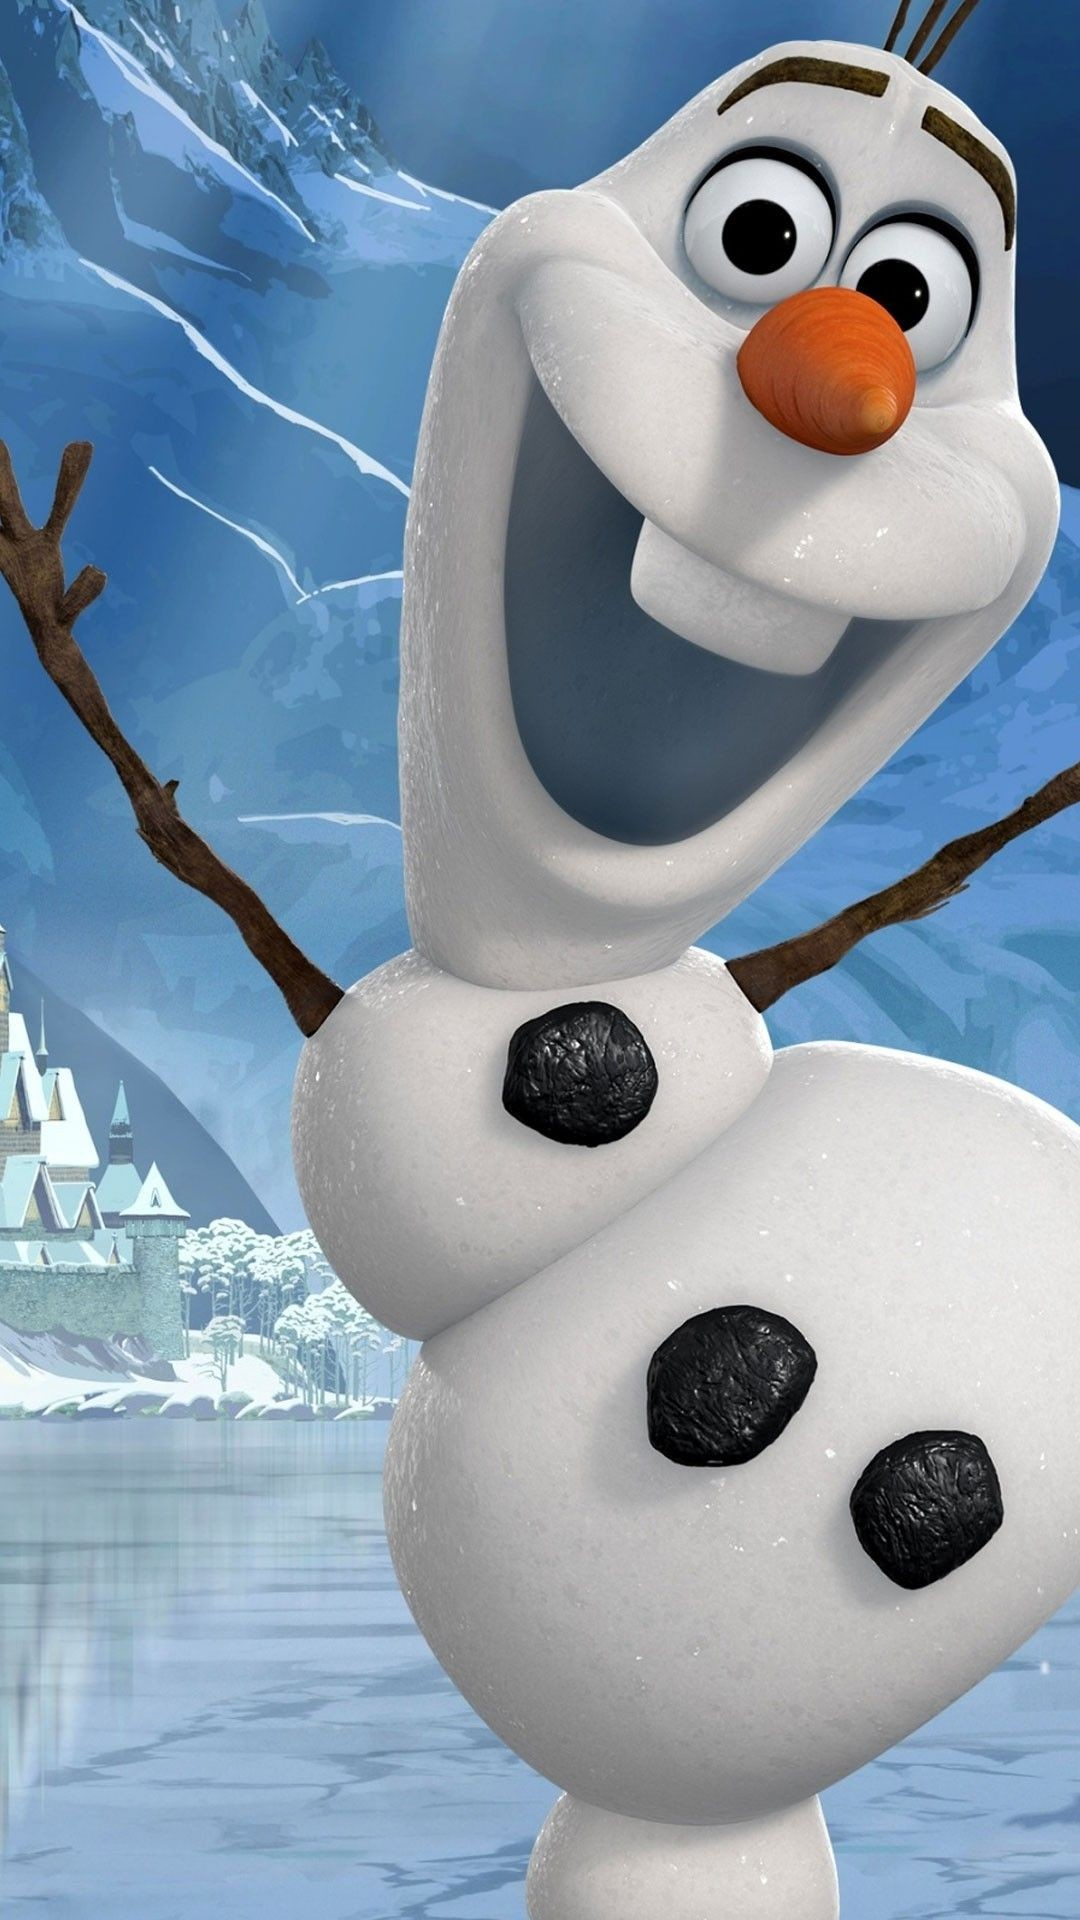 Res: 1080x1920, Funny 2014 Christmas Frozen iPhone 6 Plus Wallpapers - Disney Olaf for  Girls #2014 #Christmas #Frozen